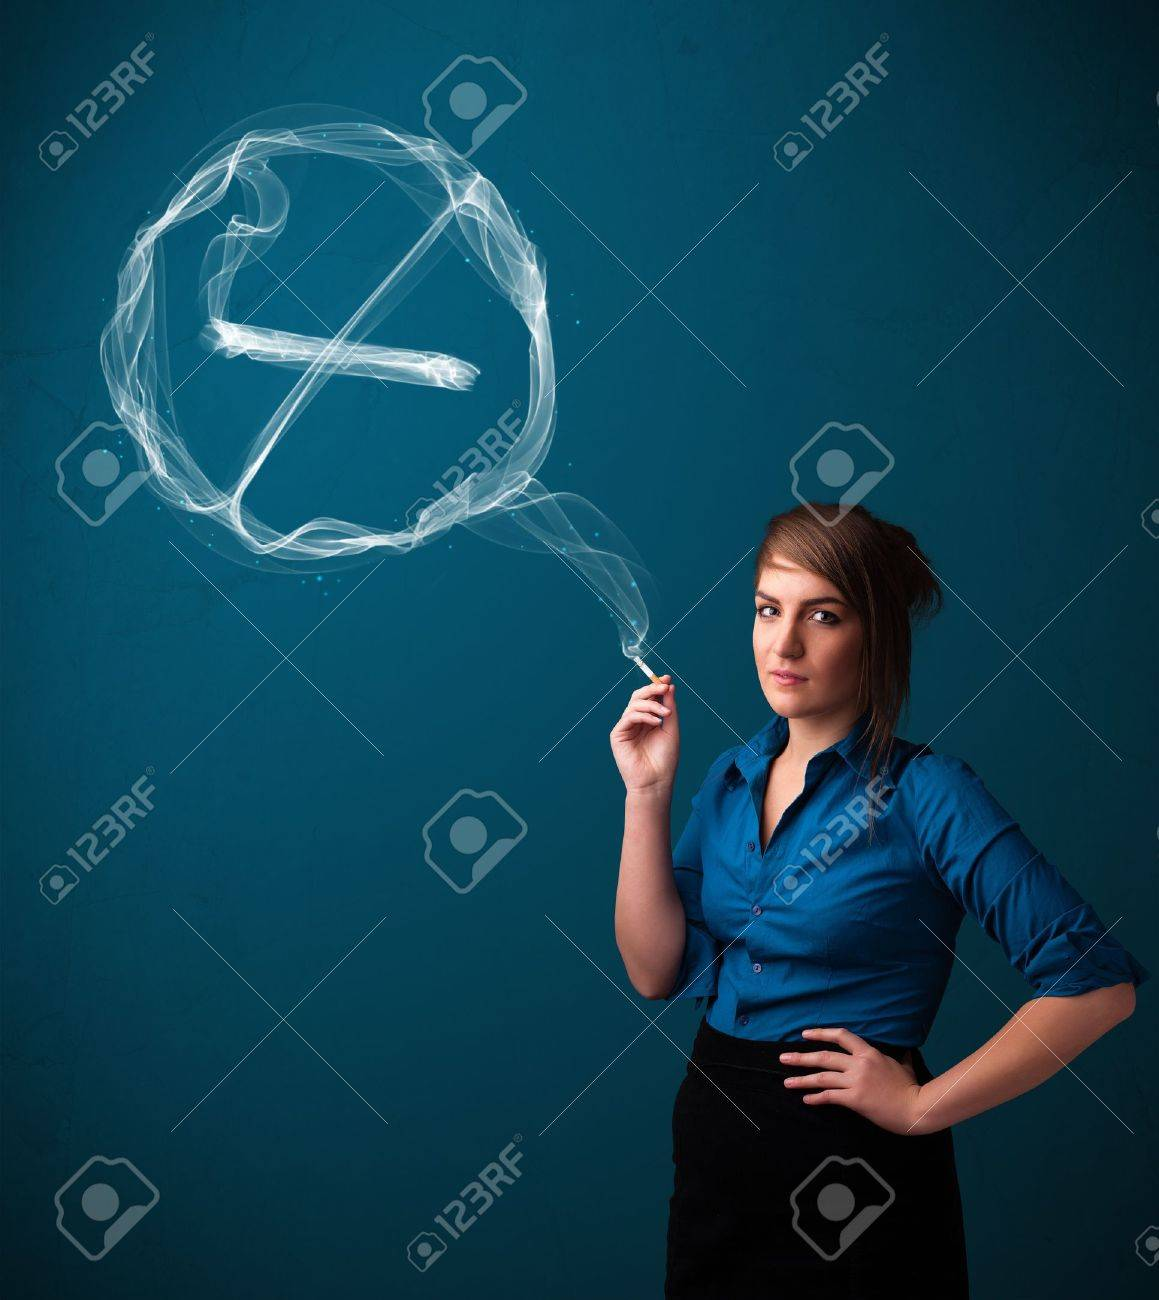 Pretty young lady smoking unheathy cigarette with no smoking sign Stock Photo - 16746828